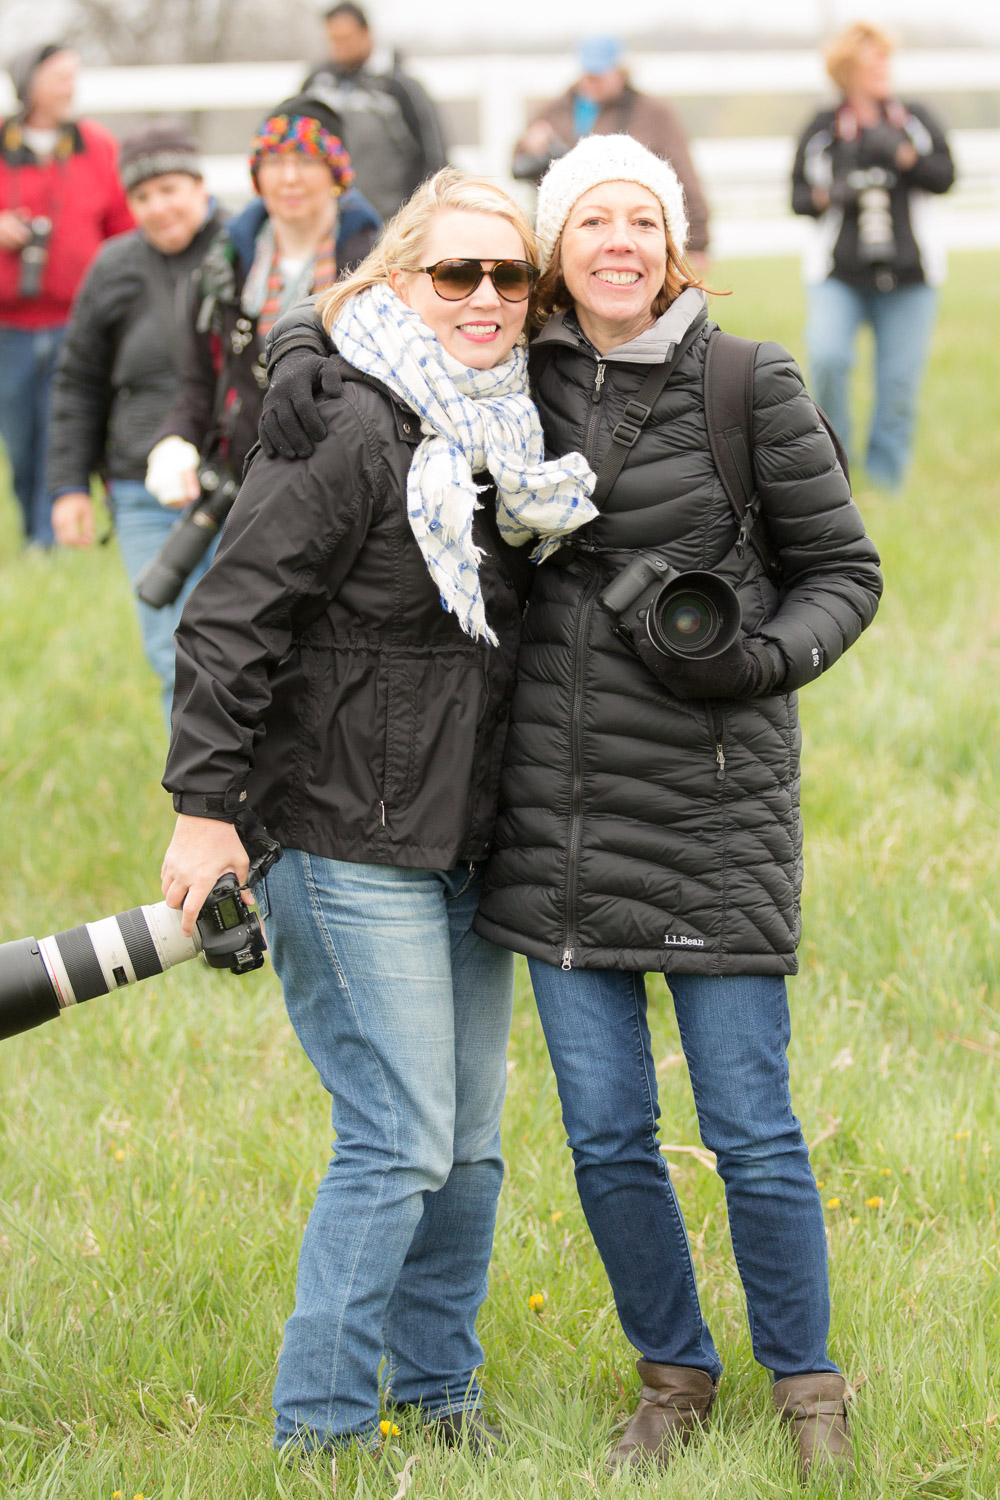 Anne Belmont and me after my April 2016 event  Horsing Around Chicago: Photographing the Tempel Lipizzans . Photo Credit: Chris Smith/Out of Chicago Photography.